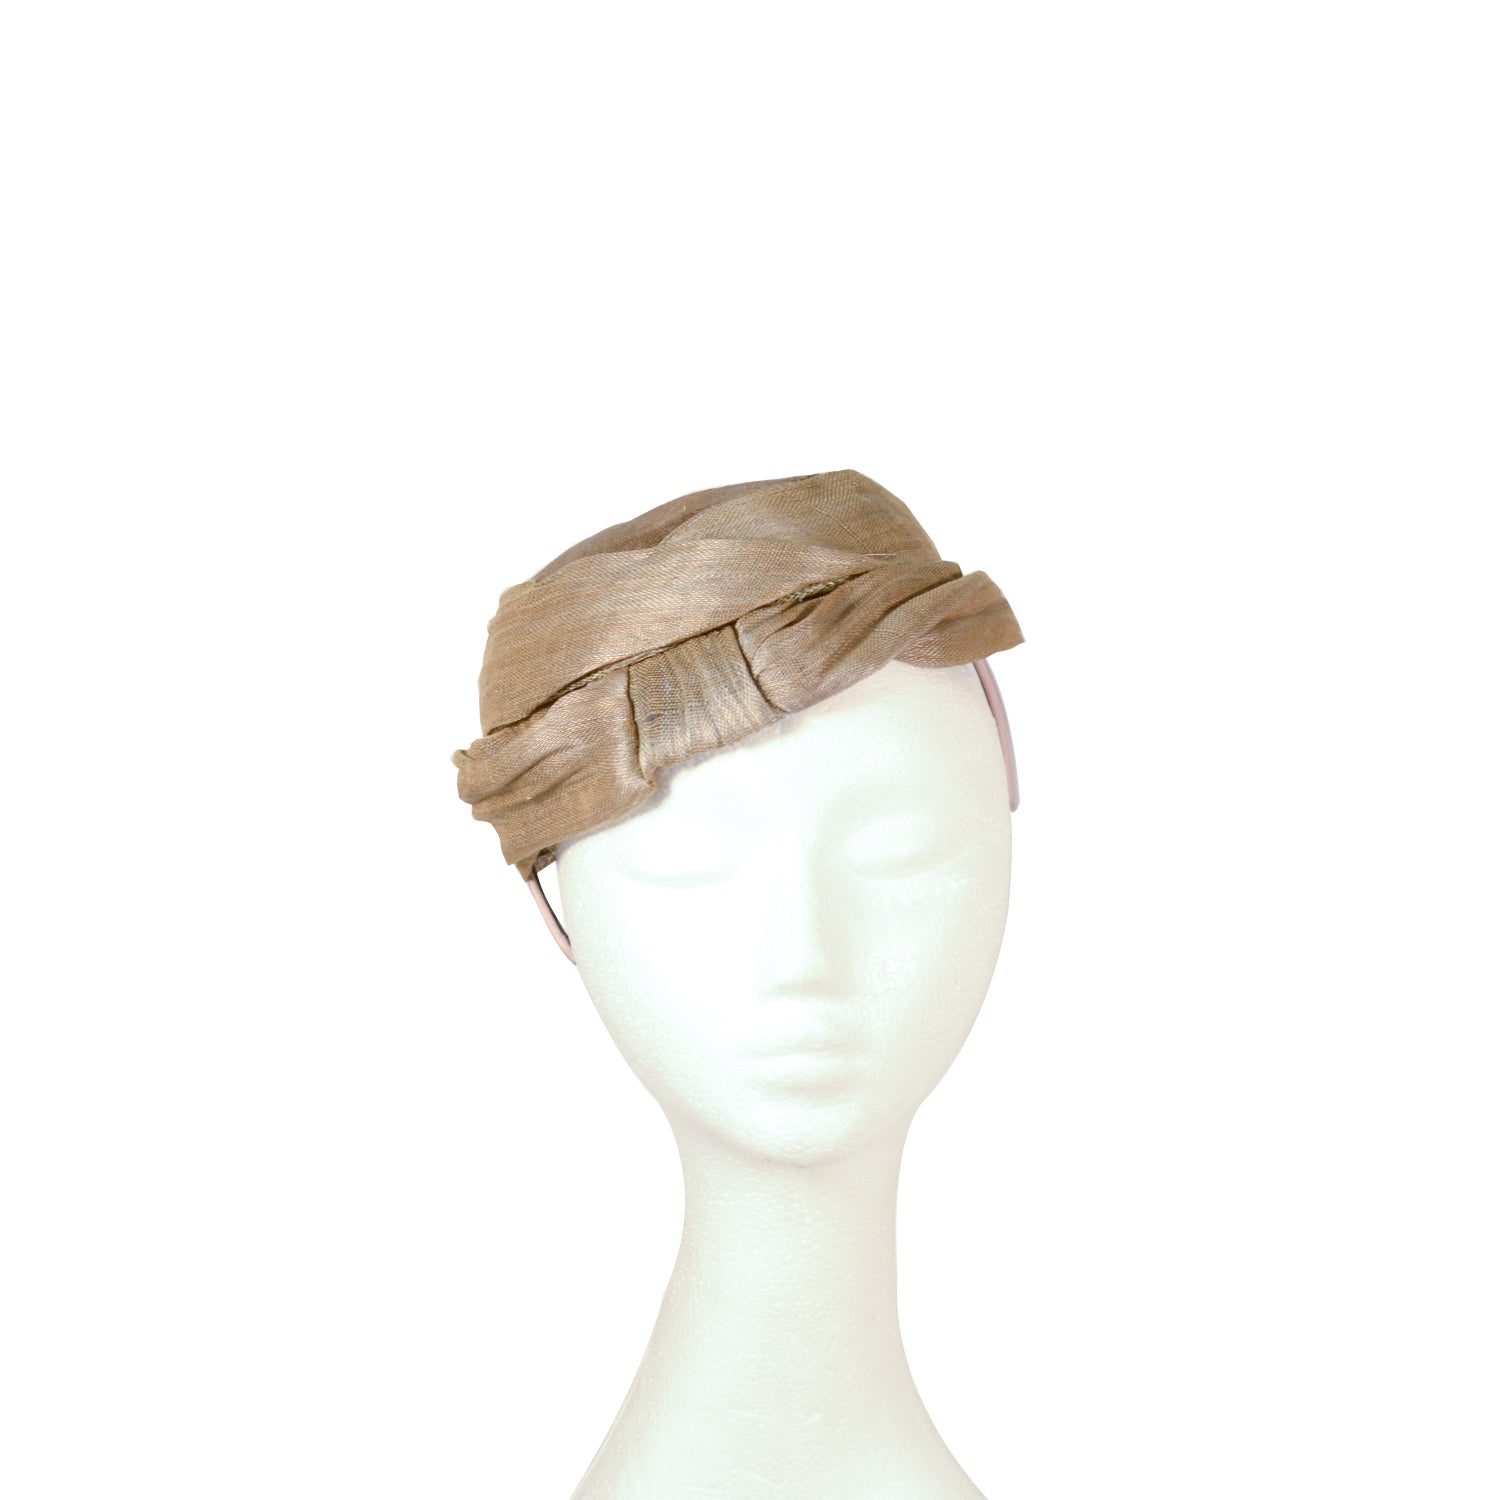 Green Khaki hat style fascinator